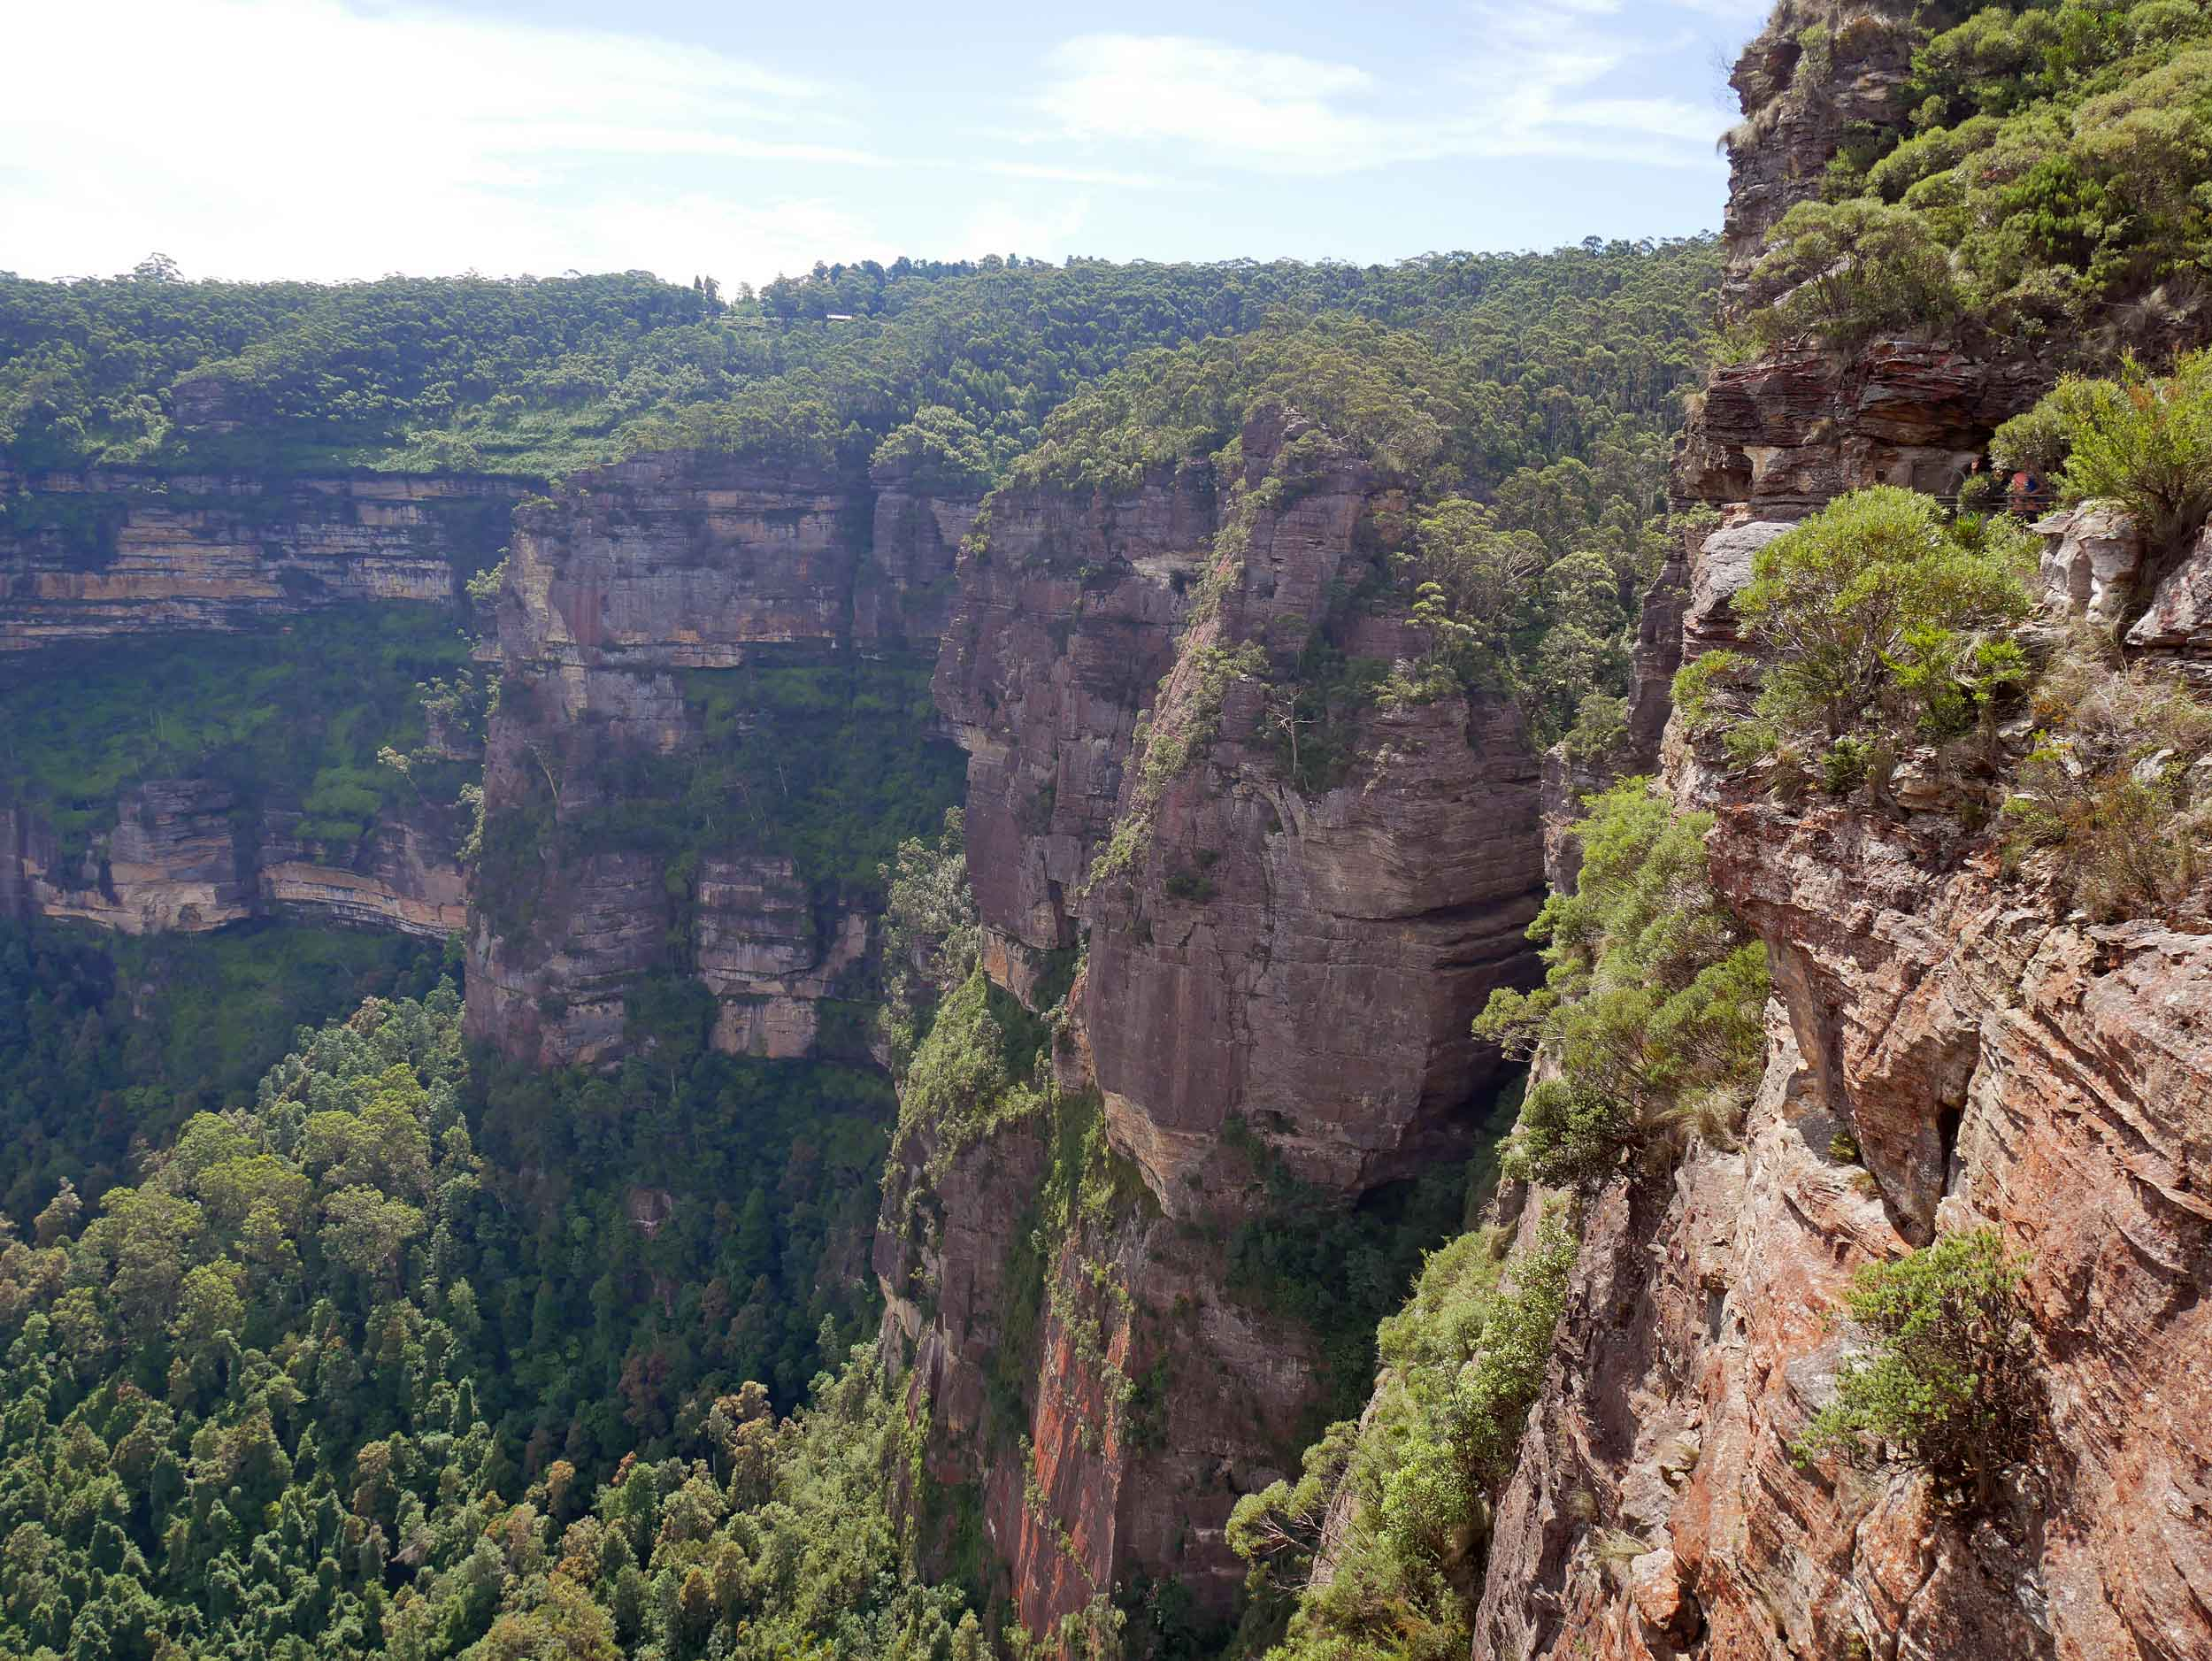 The Blue Mountains are home to about 1,000 canyons and Australia's greatest known number of slot canyons (deep, narrow trenches formed by running water) (Feb 2).